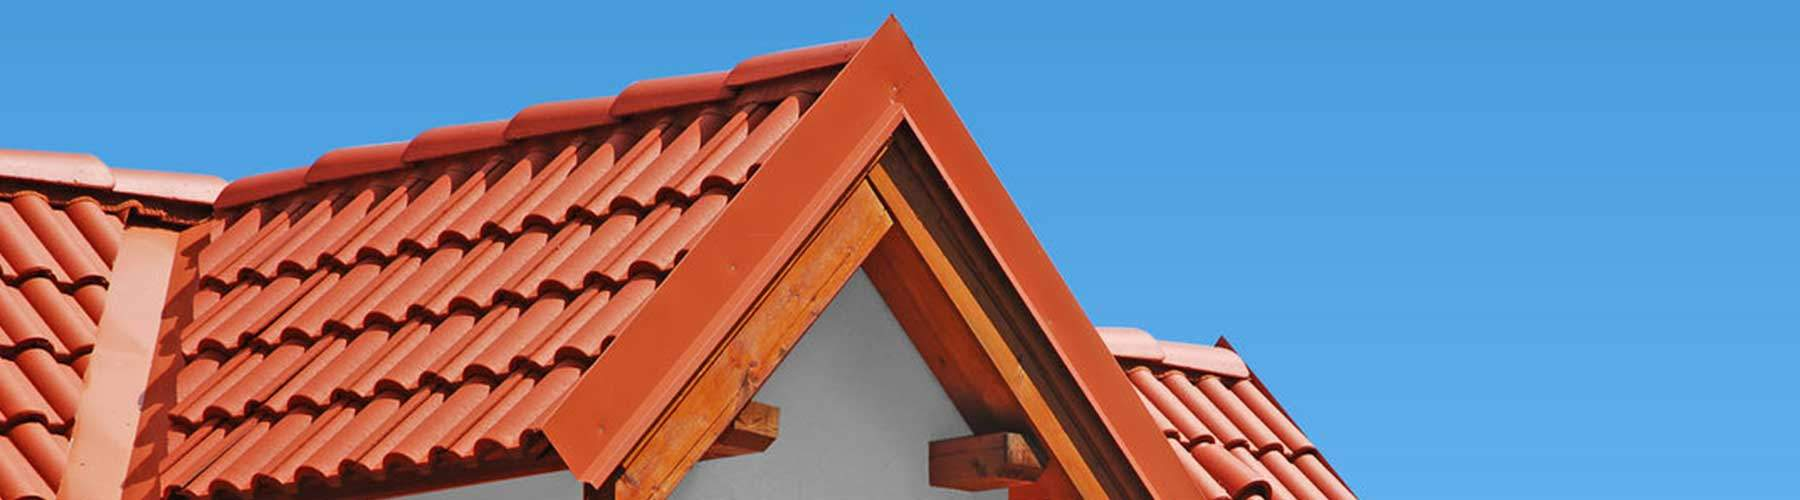 Clay Tiled House Roof